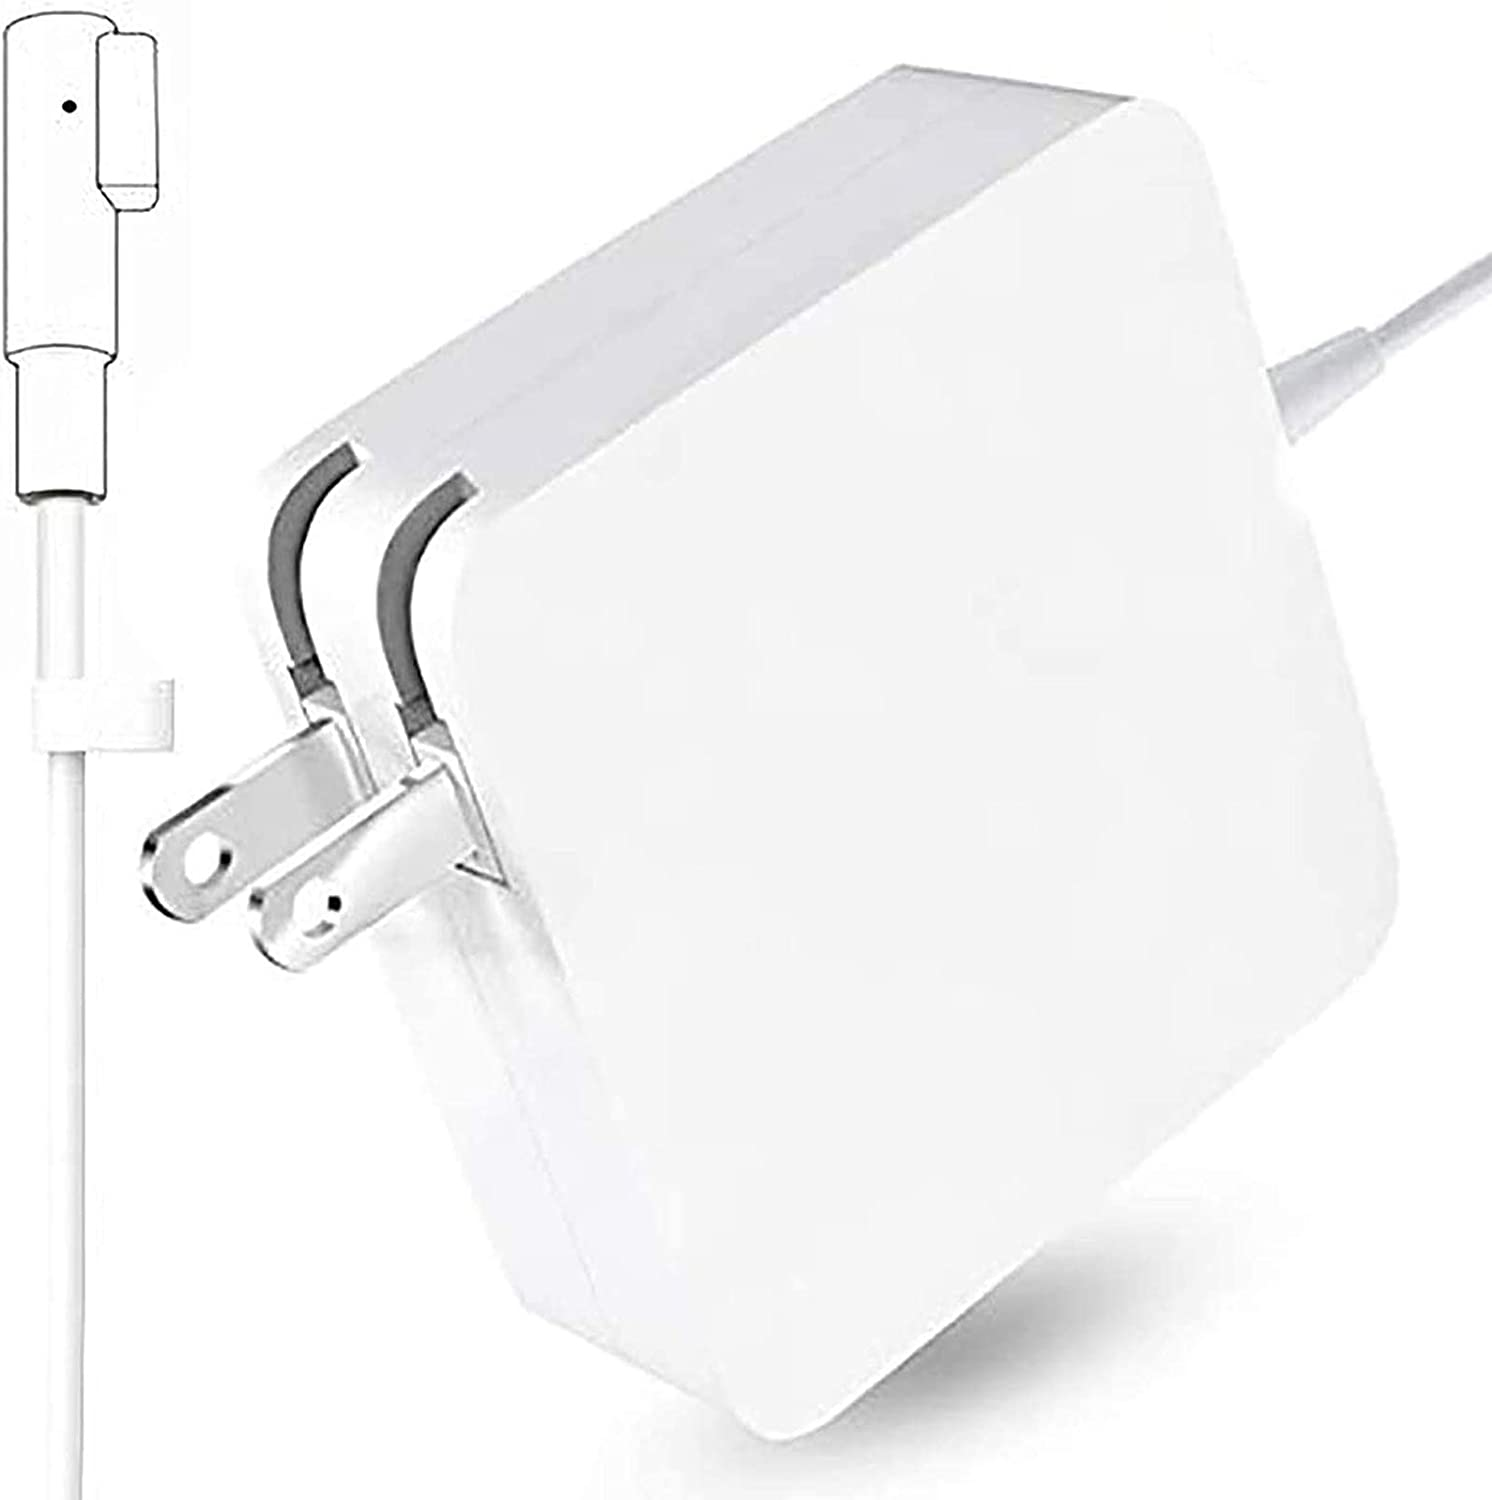 Mac Book Pro Charger 85W Mag-Safe L-Tip Power Adapter Charger Cord for MacBook Pro 13 15 and 17 inch Magnetic Connector (Before Mid 2012 Models)